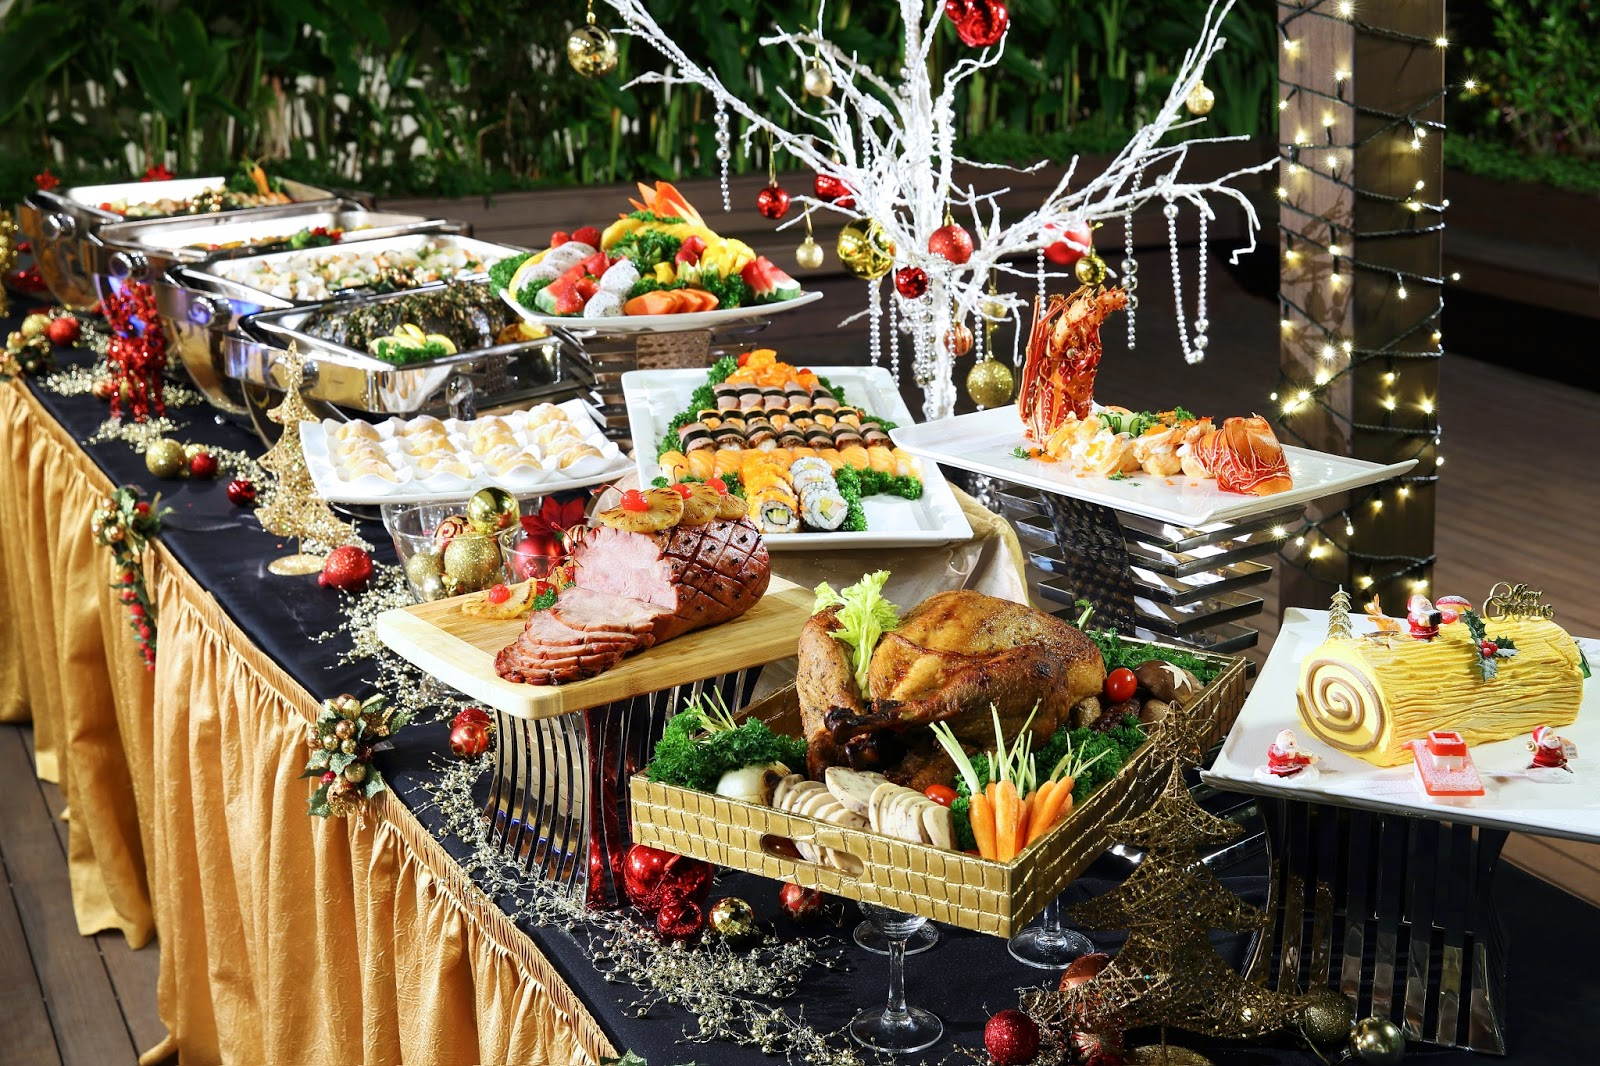 We've put together a collection of dinner party ideas, recipes, menu ideas, and preparation tips. Browse our collection of impressive appetizers, main dishes, side dish recipes, as well as desserts that end the meal with wow factor.